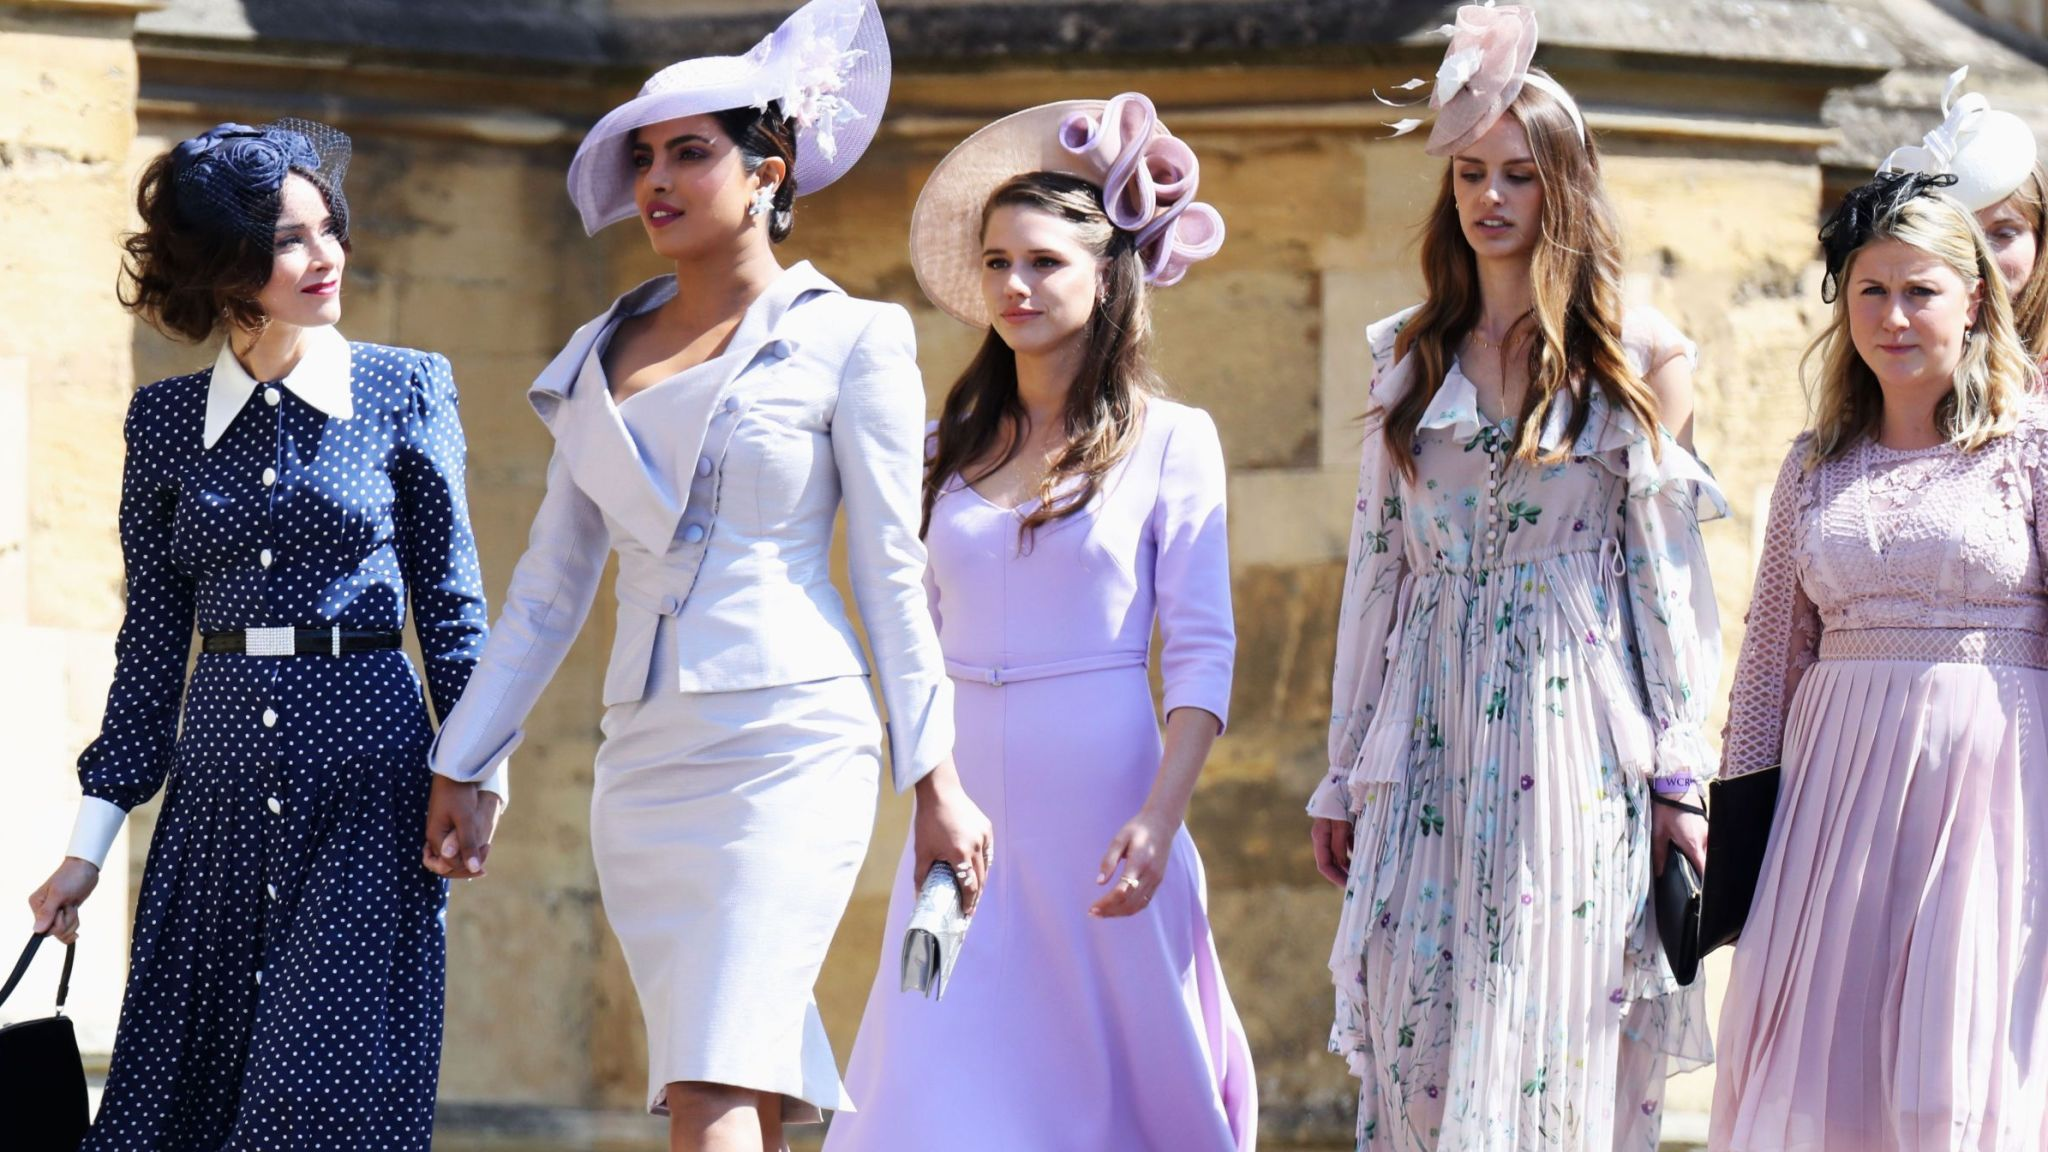 Priyanka Chopra (second left) arriving for Meghan Markle and Prince Harry's wedding in Windsor